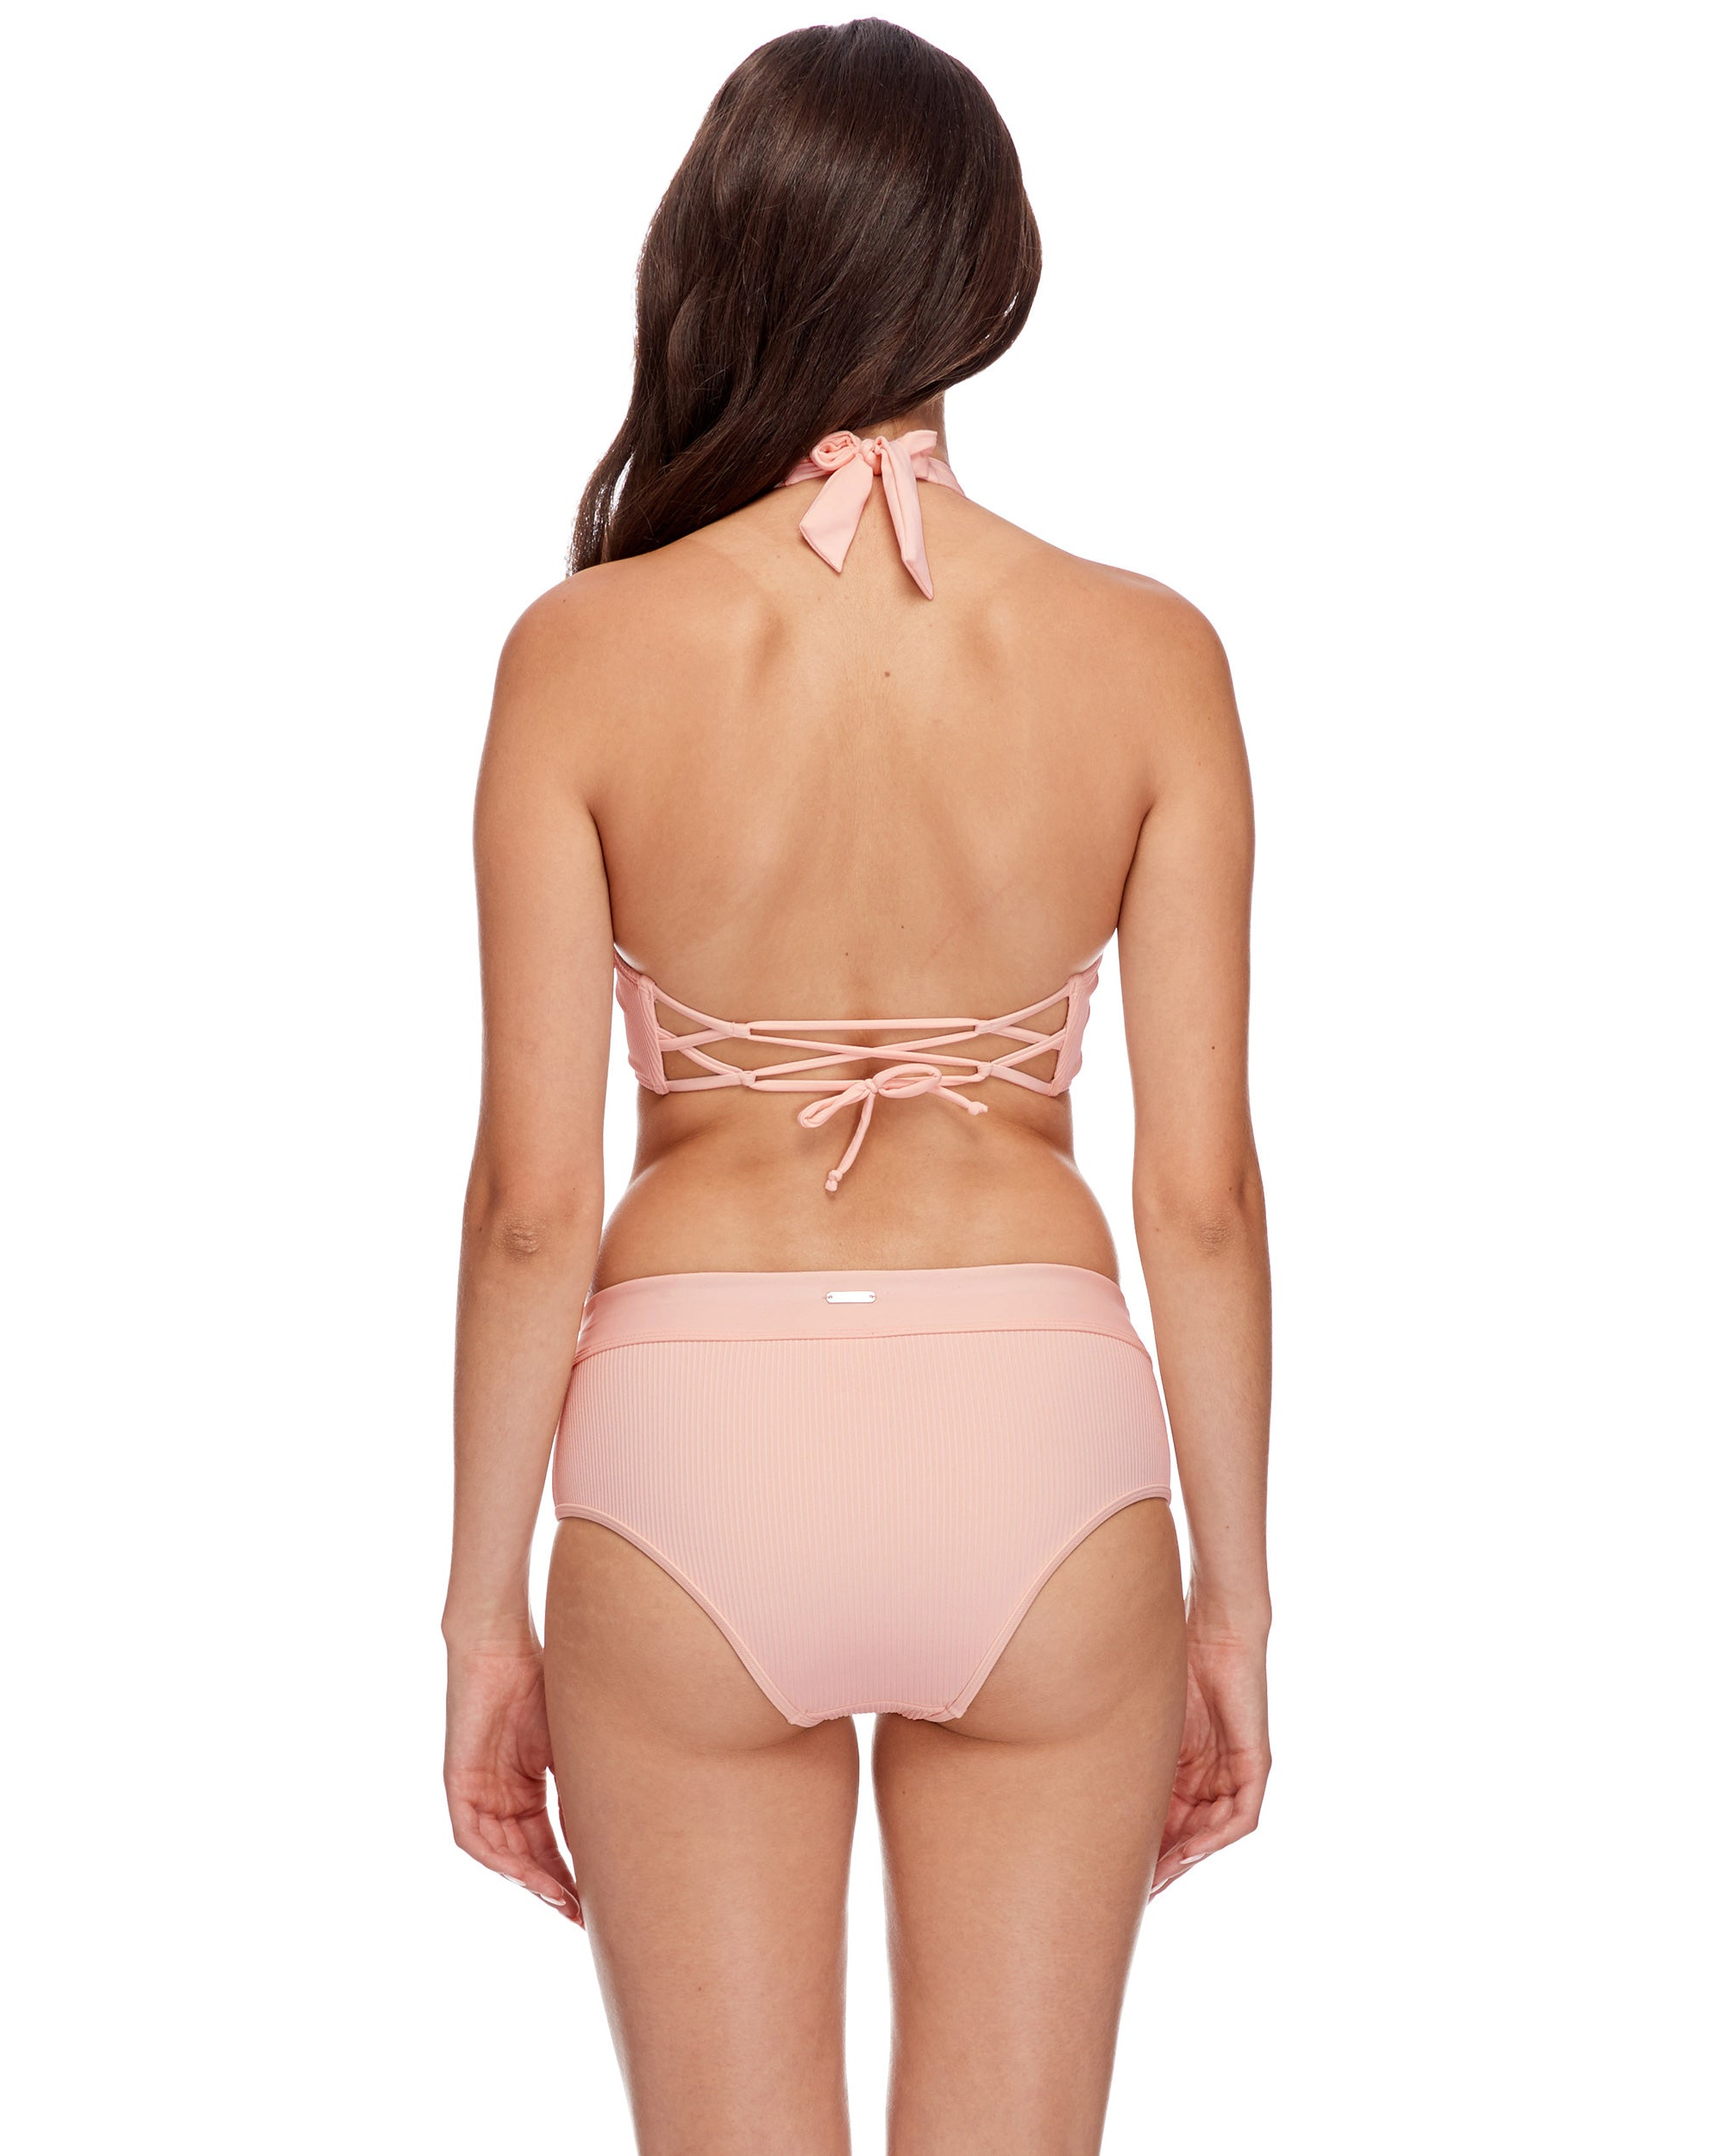 c5994ec6c4 Ibiza Ingrid Swim Top - Seashell Ibiza Ingrid Swim Top - Seashell ...